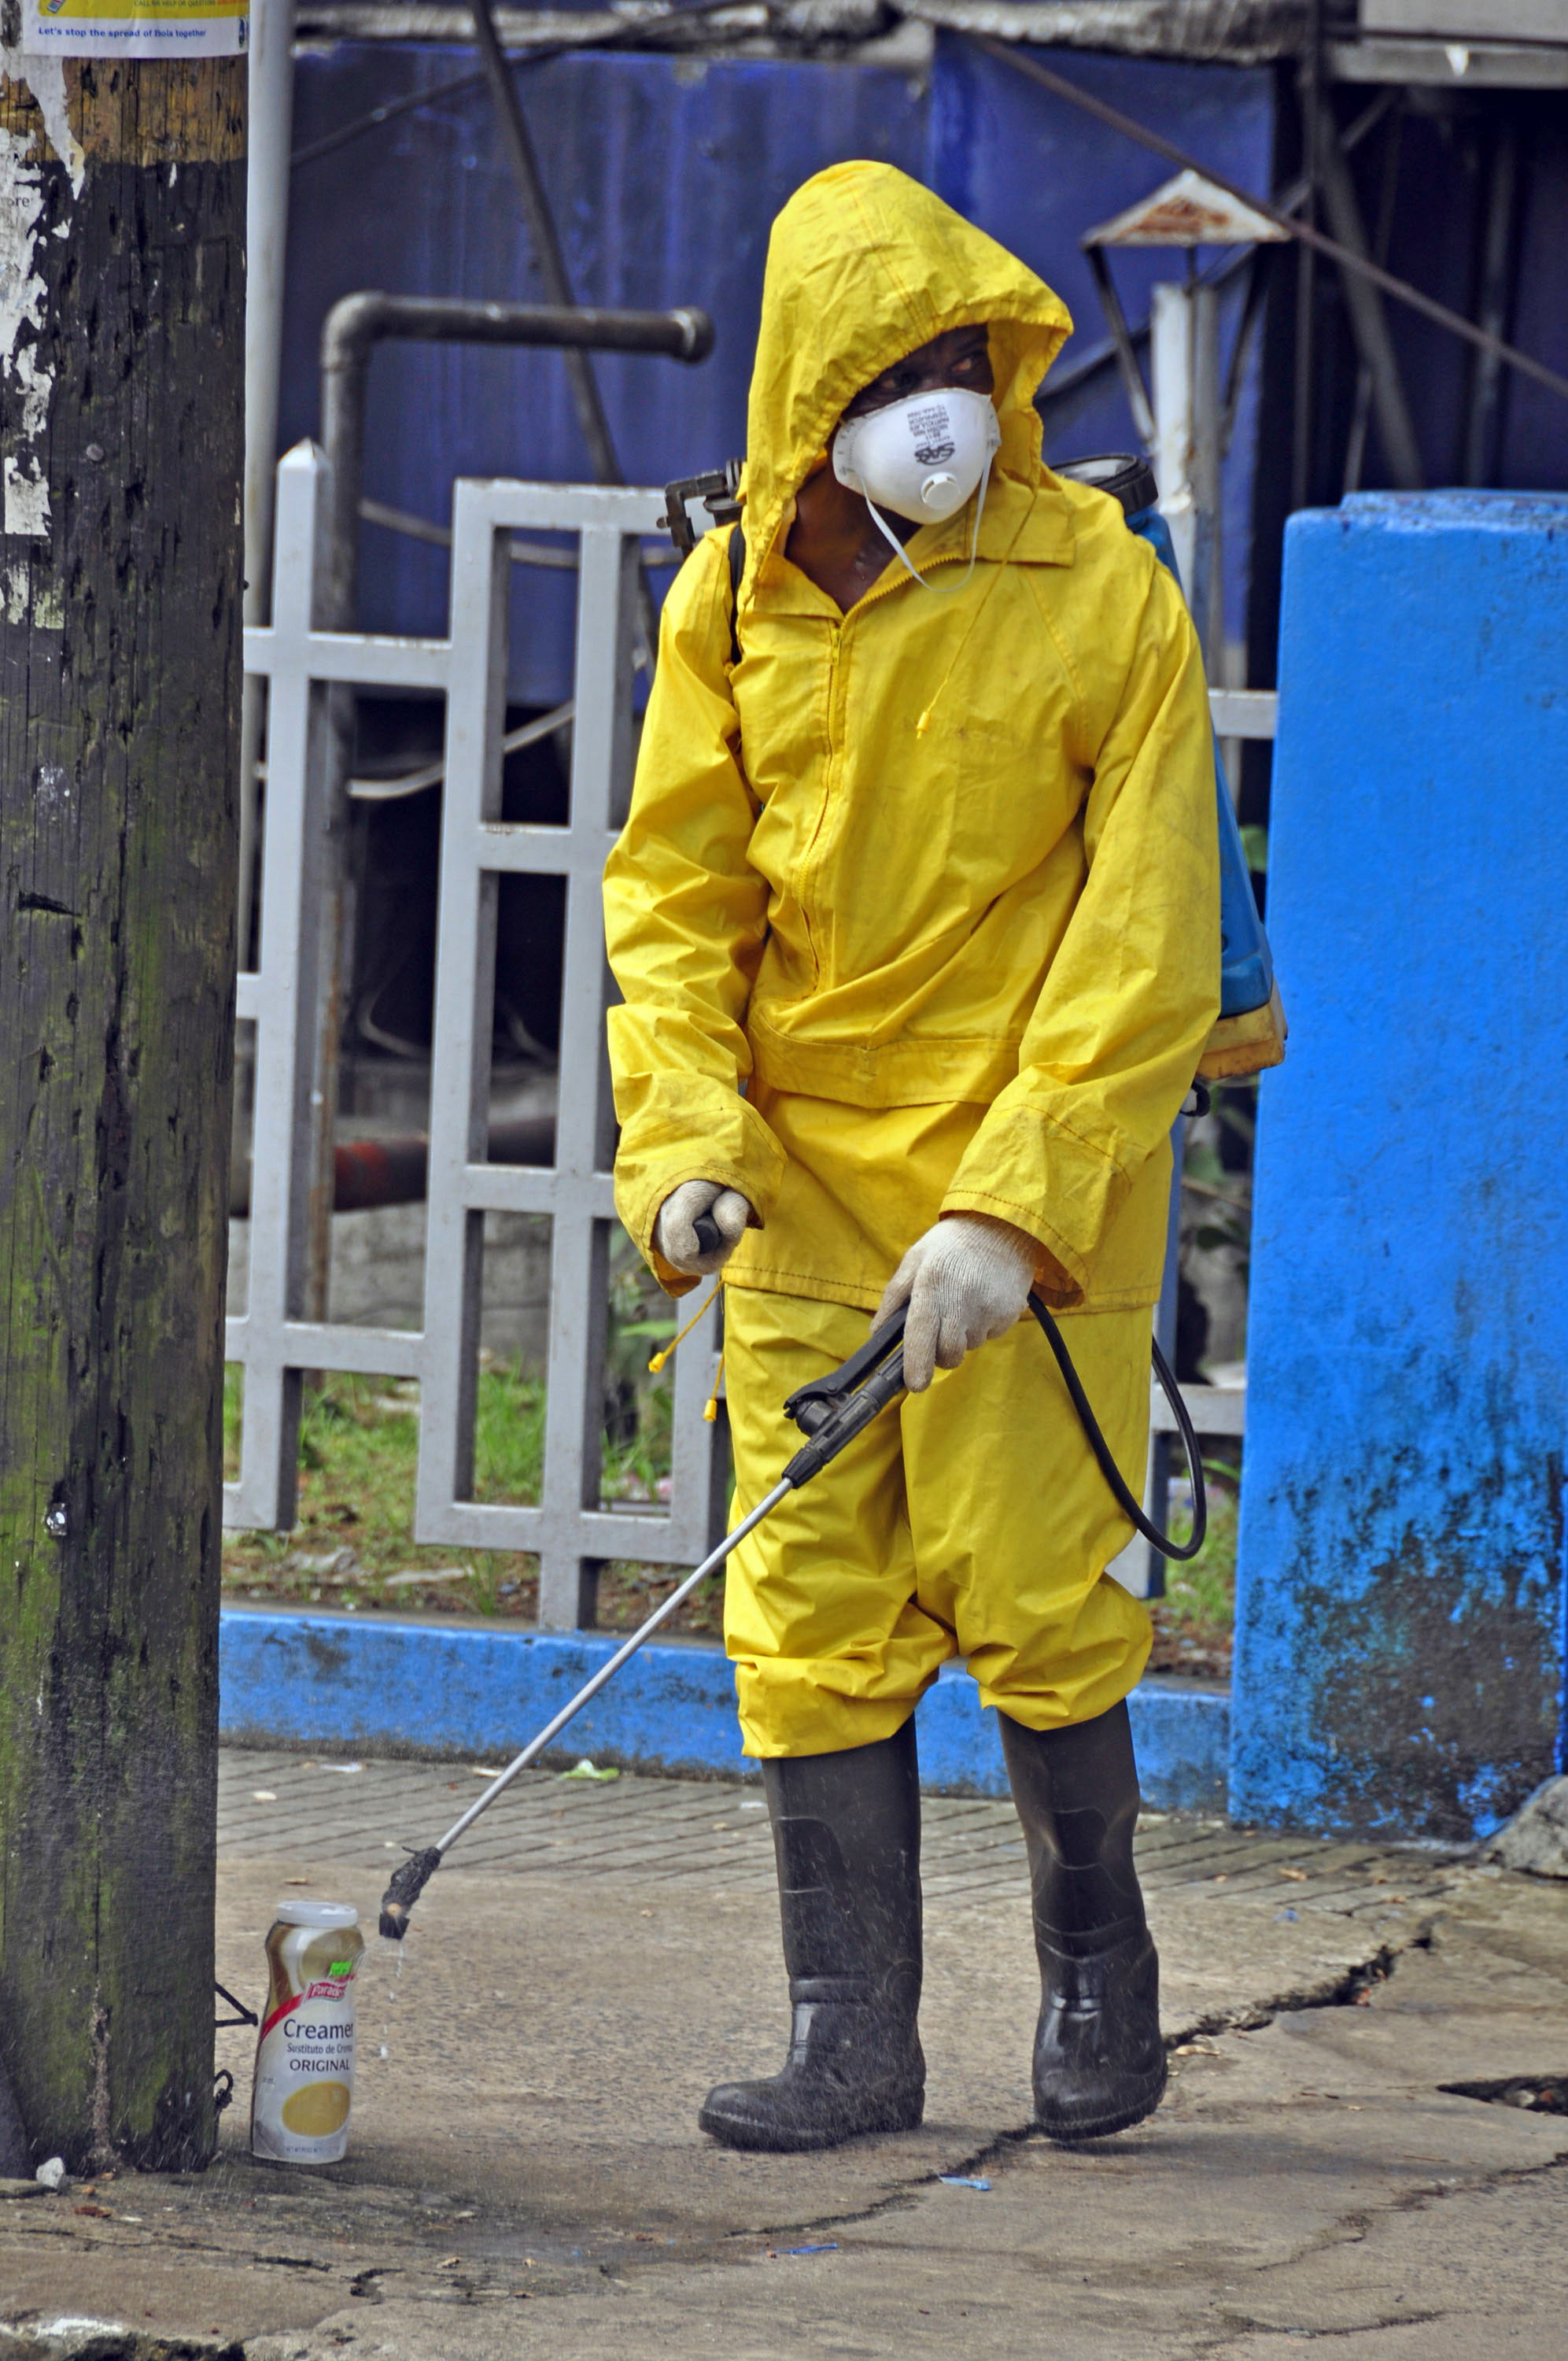 An employee  of the Monrovia City Corporation sprays disinfectant on a street, in front of a building in a bid to prevent the spread of  the deadly Ebola virus, in the city of Monrovia, Liberia, Friday, Aug. 1, 2014 .U.S. health officials warned Amer...